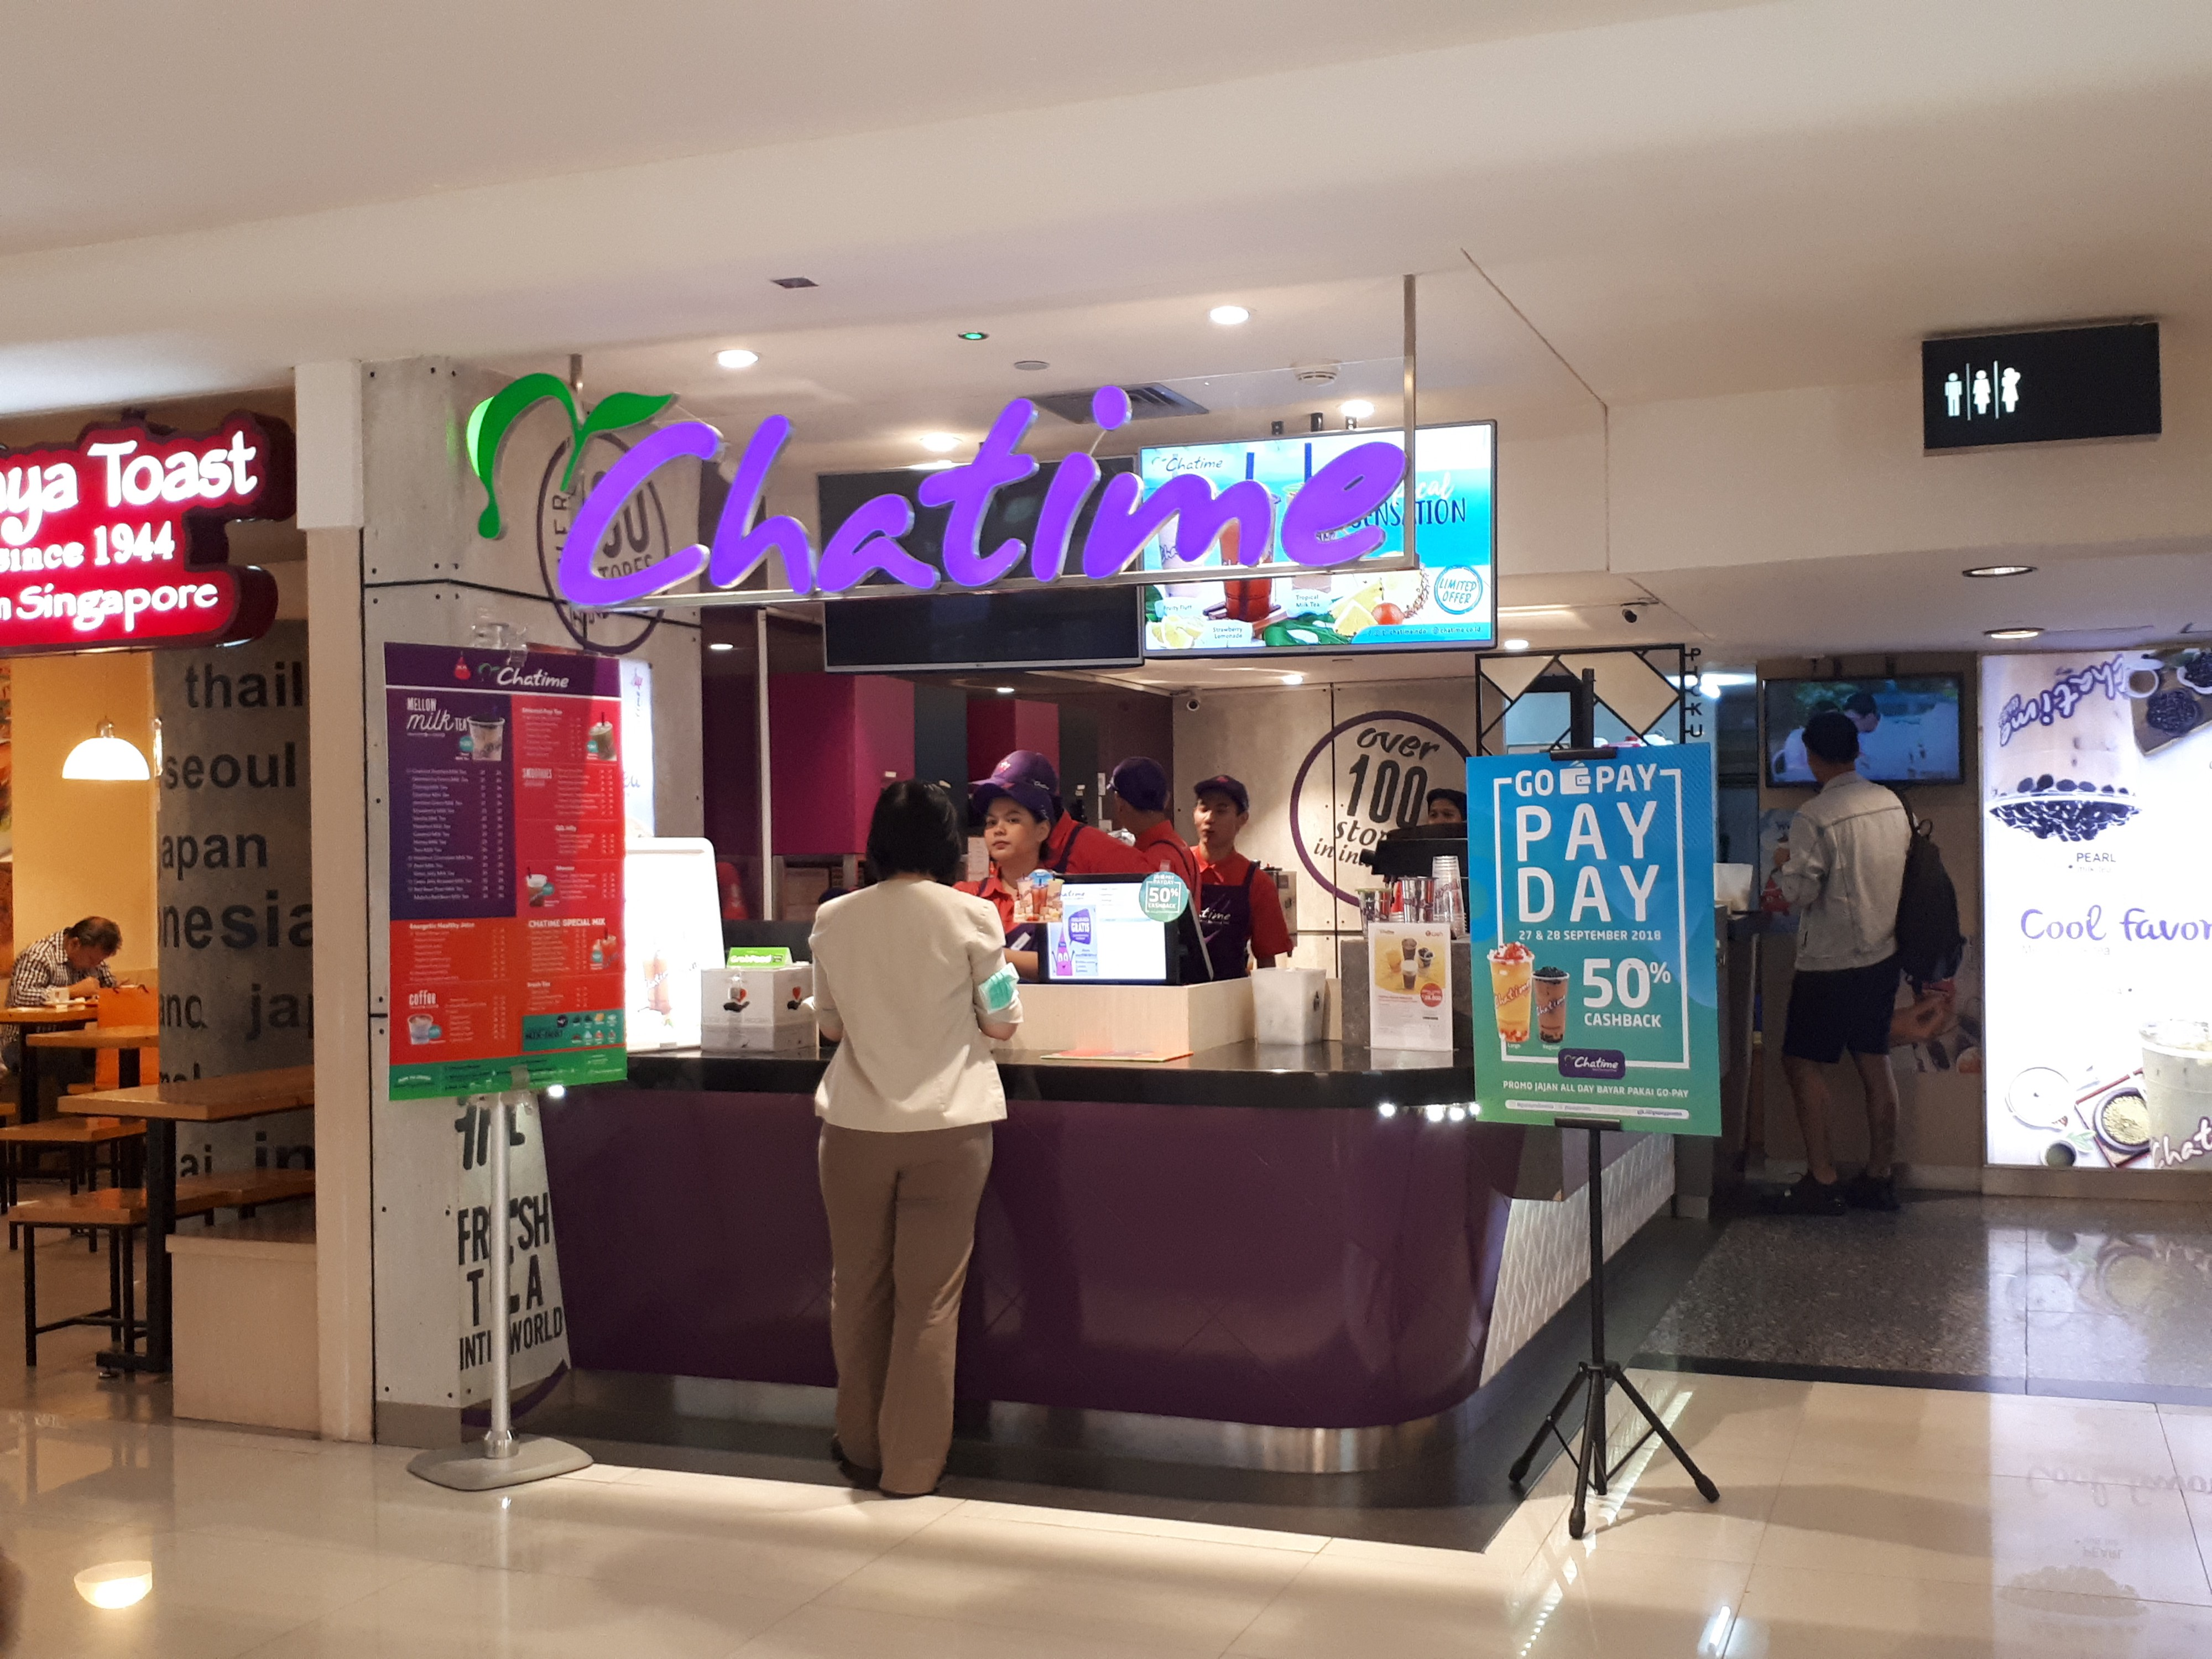 Is it Worth Your Time? — Chatime's 50% Go-Pay Cashback Deal